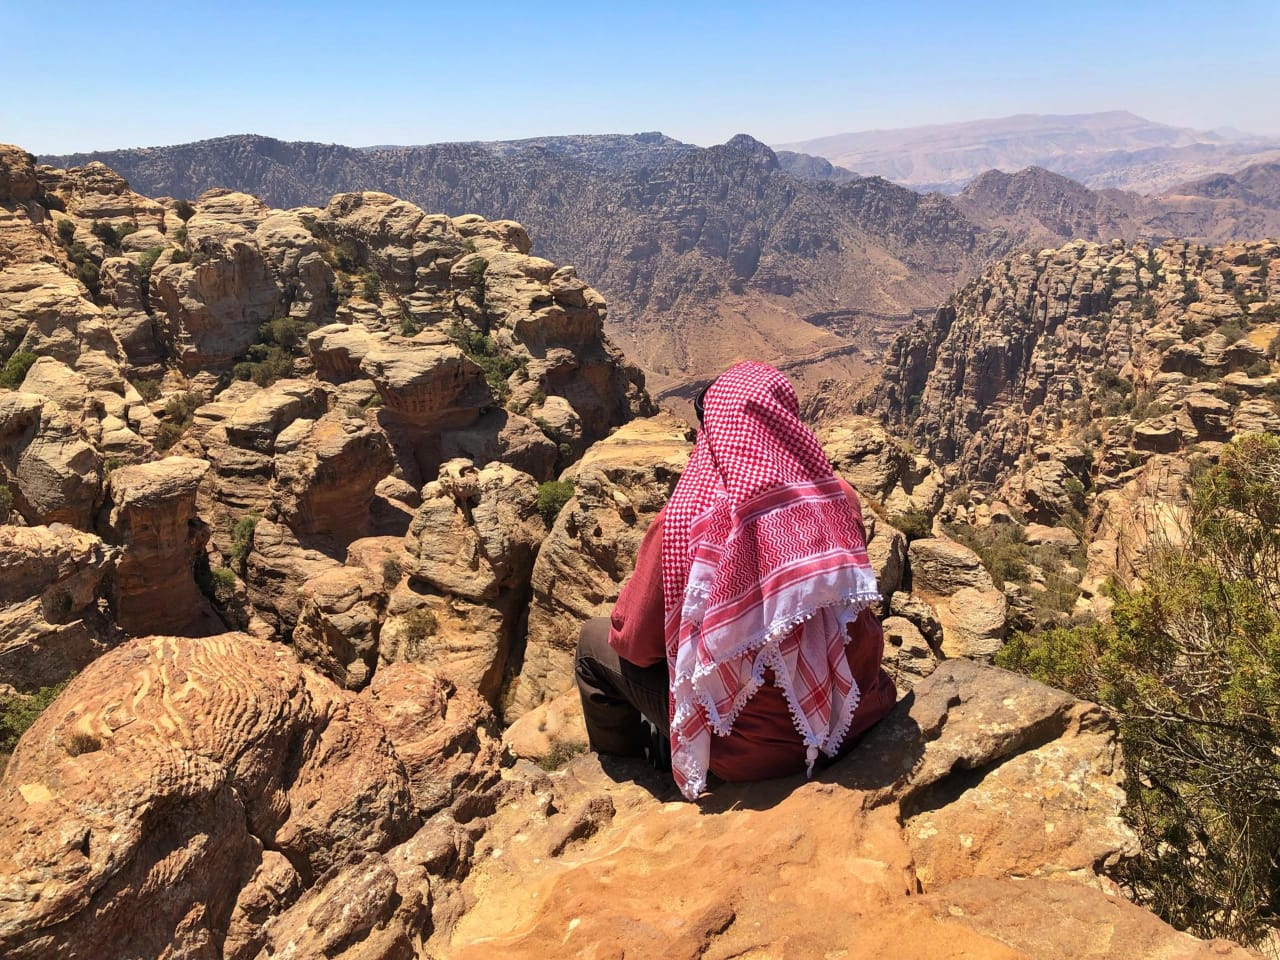 Jordan trekking holiday: Dana to Petra trek plus Wadi Rum